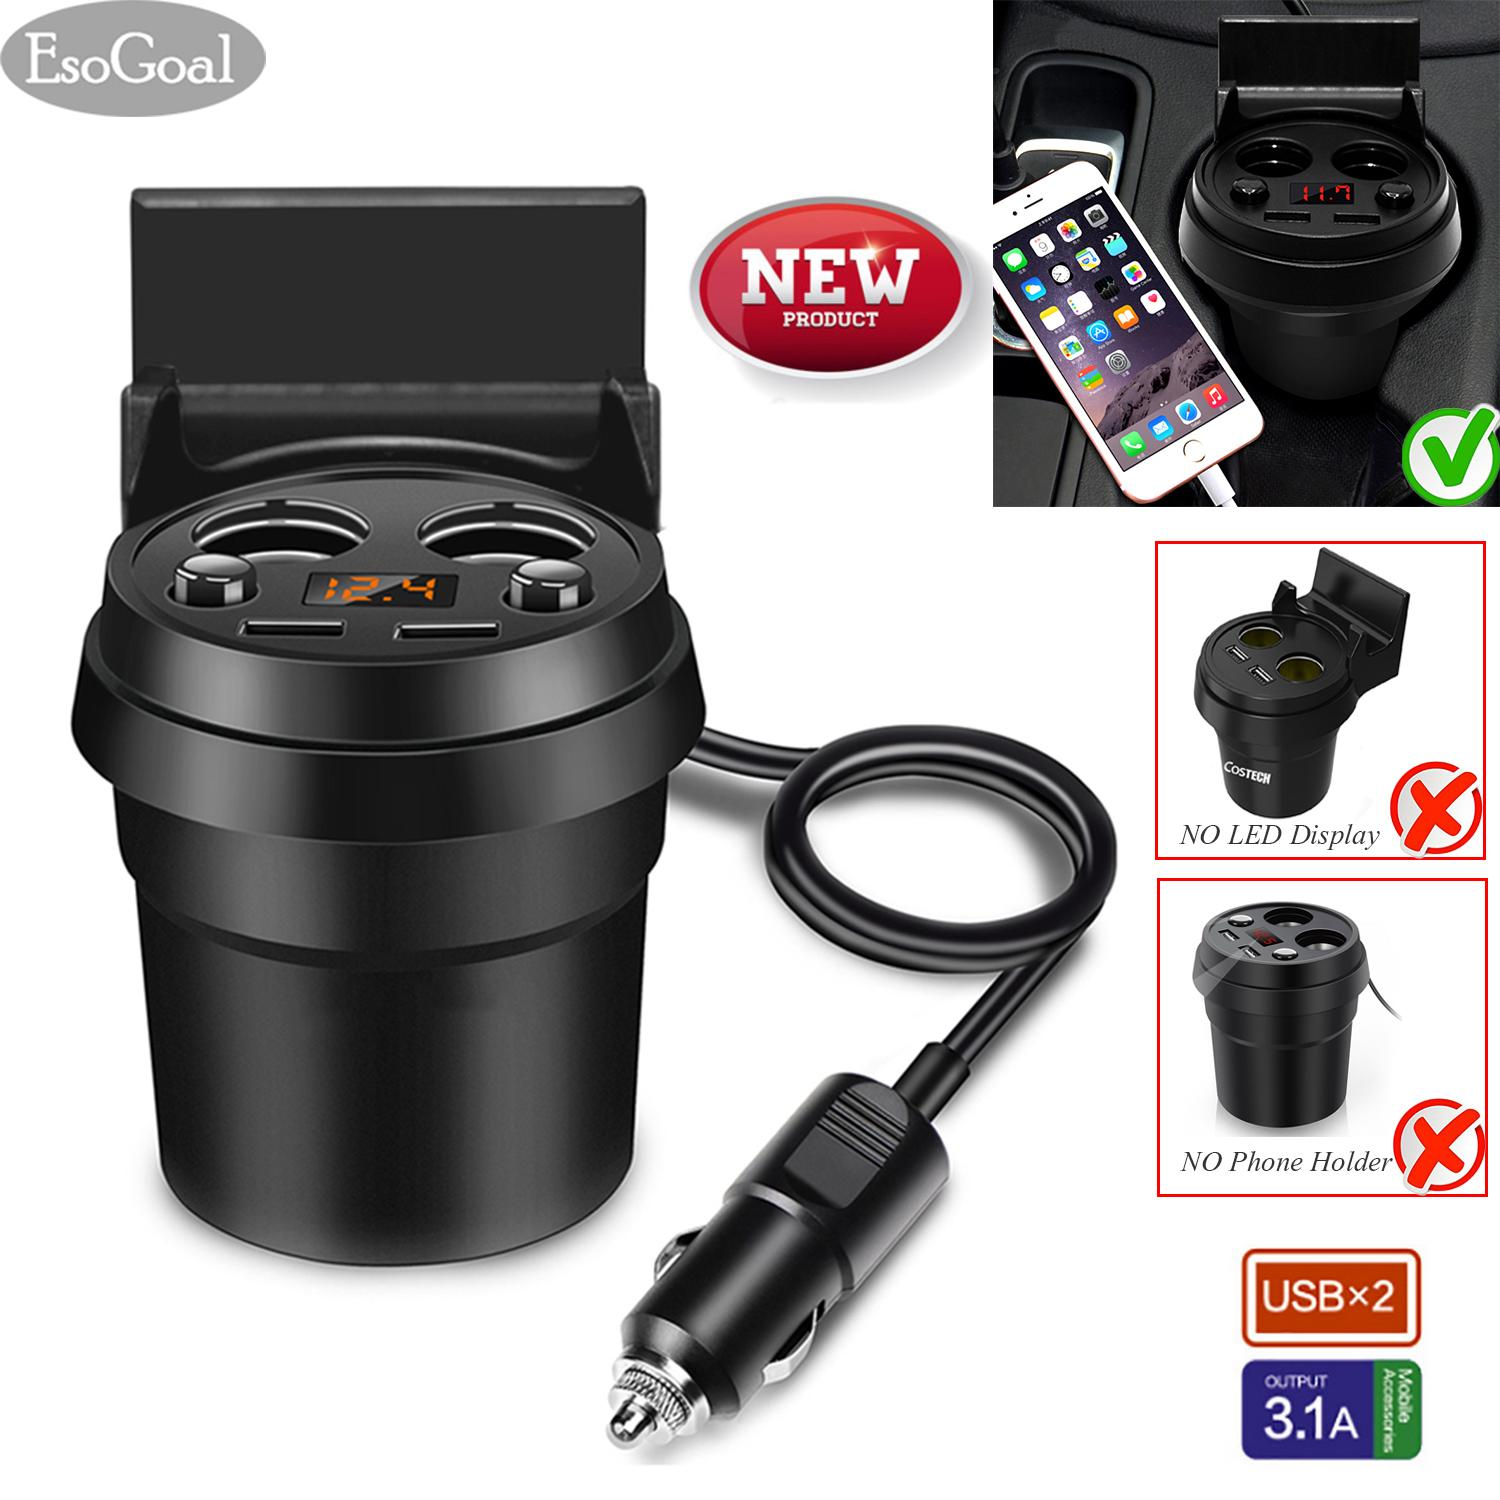 Esogoal Car Charger, Car Cup Charger, 3 In 1 Quick Charge Travel Cup Holder With Led Display; 12v~24v Multi-Function Power Adapter Dual Usb Ports 3.1a & 2 Lighter Socket & Holder By Esogoal.